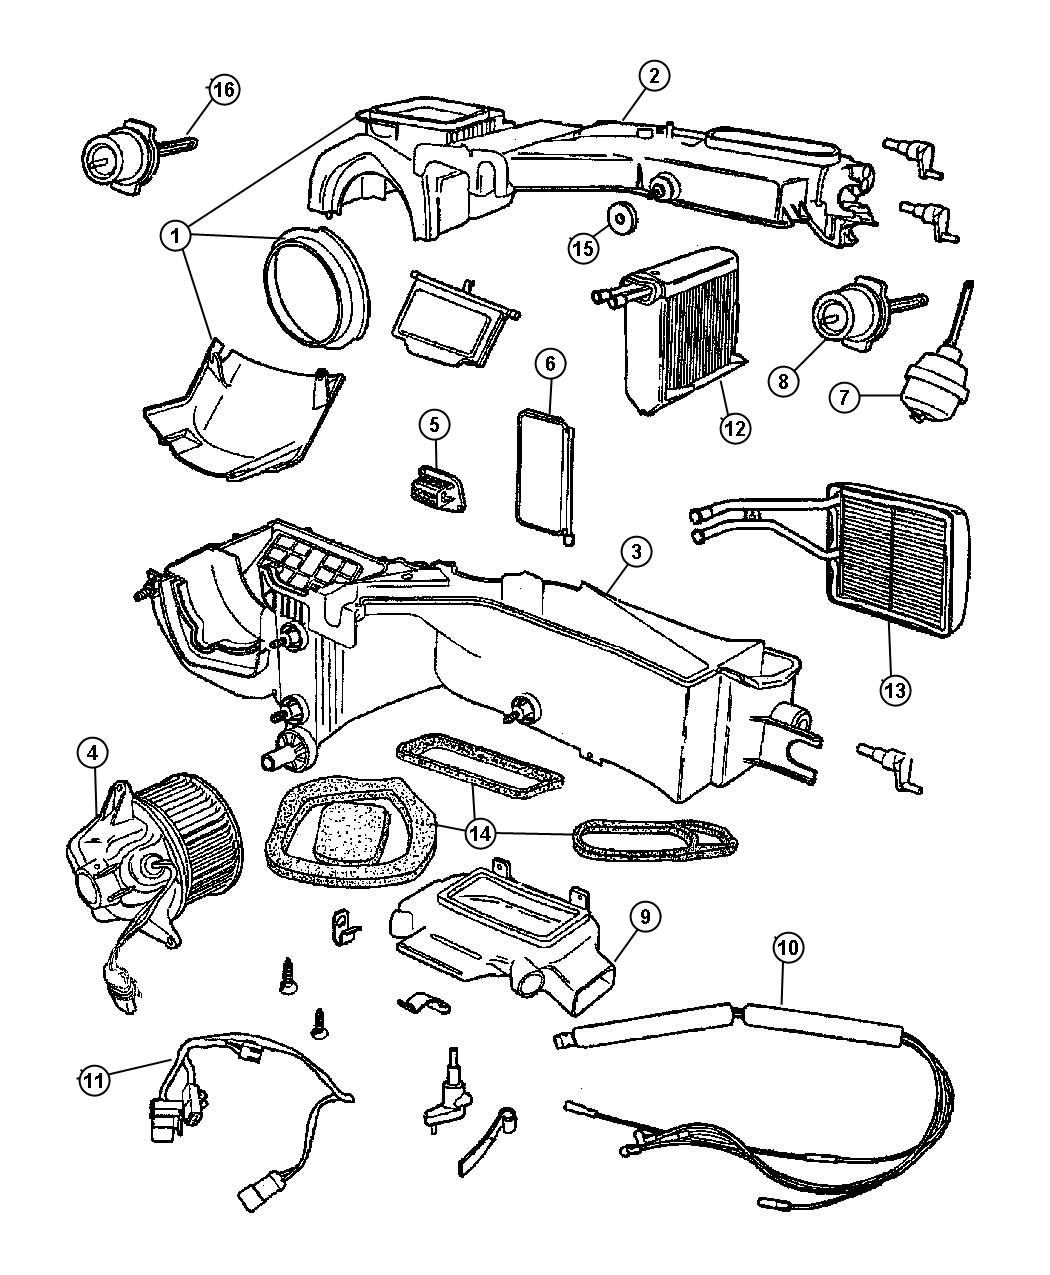 2013 Jeep Wrangler Heater kit. Heater core assembly